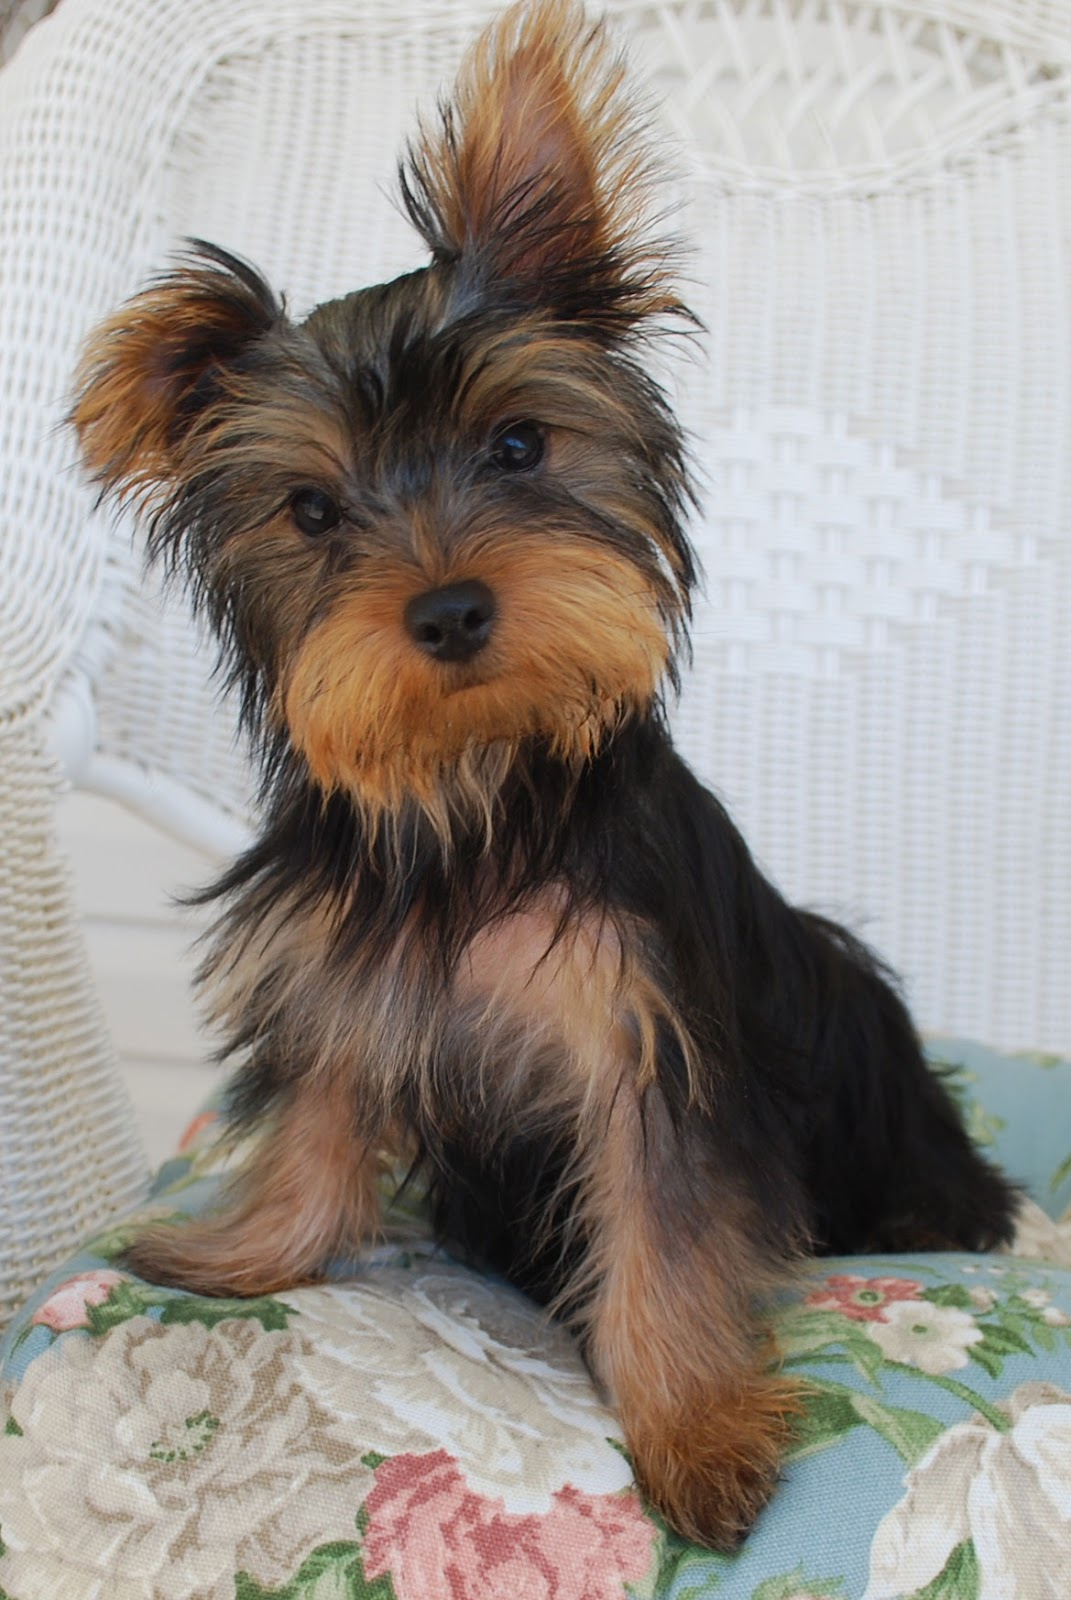 a792e86b3e292 Yorshire Terrier   Yorkshire   Yorkie